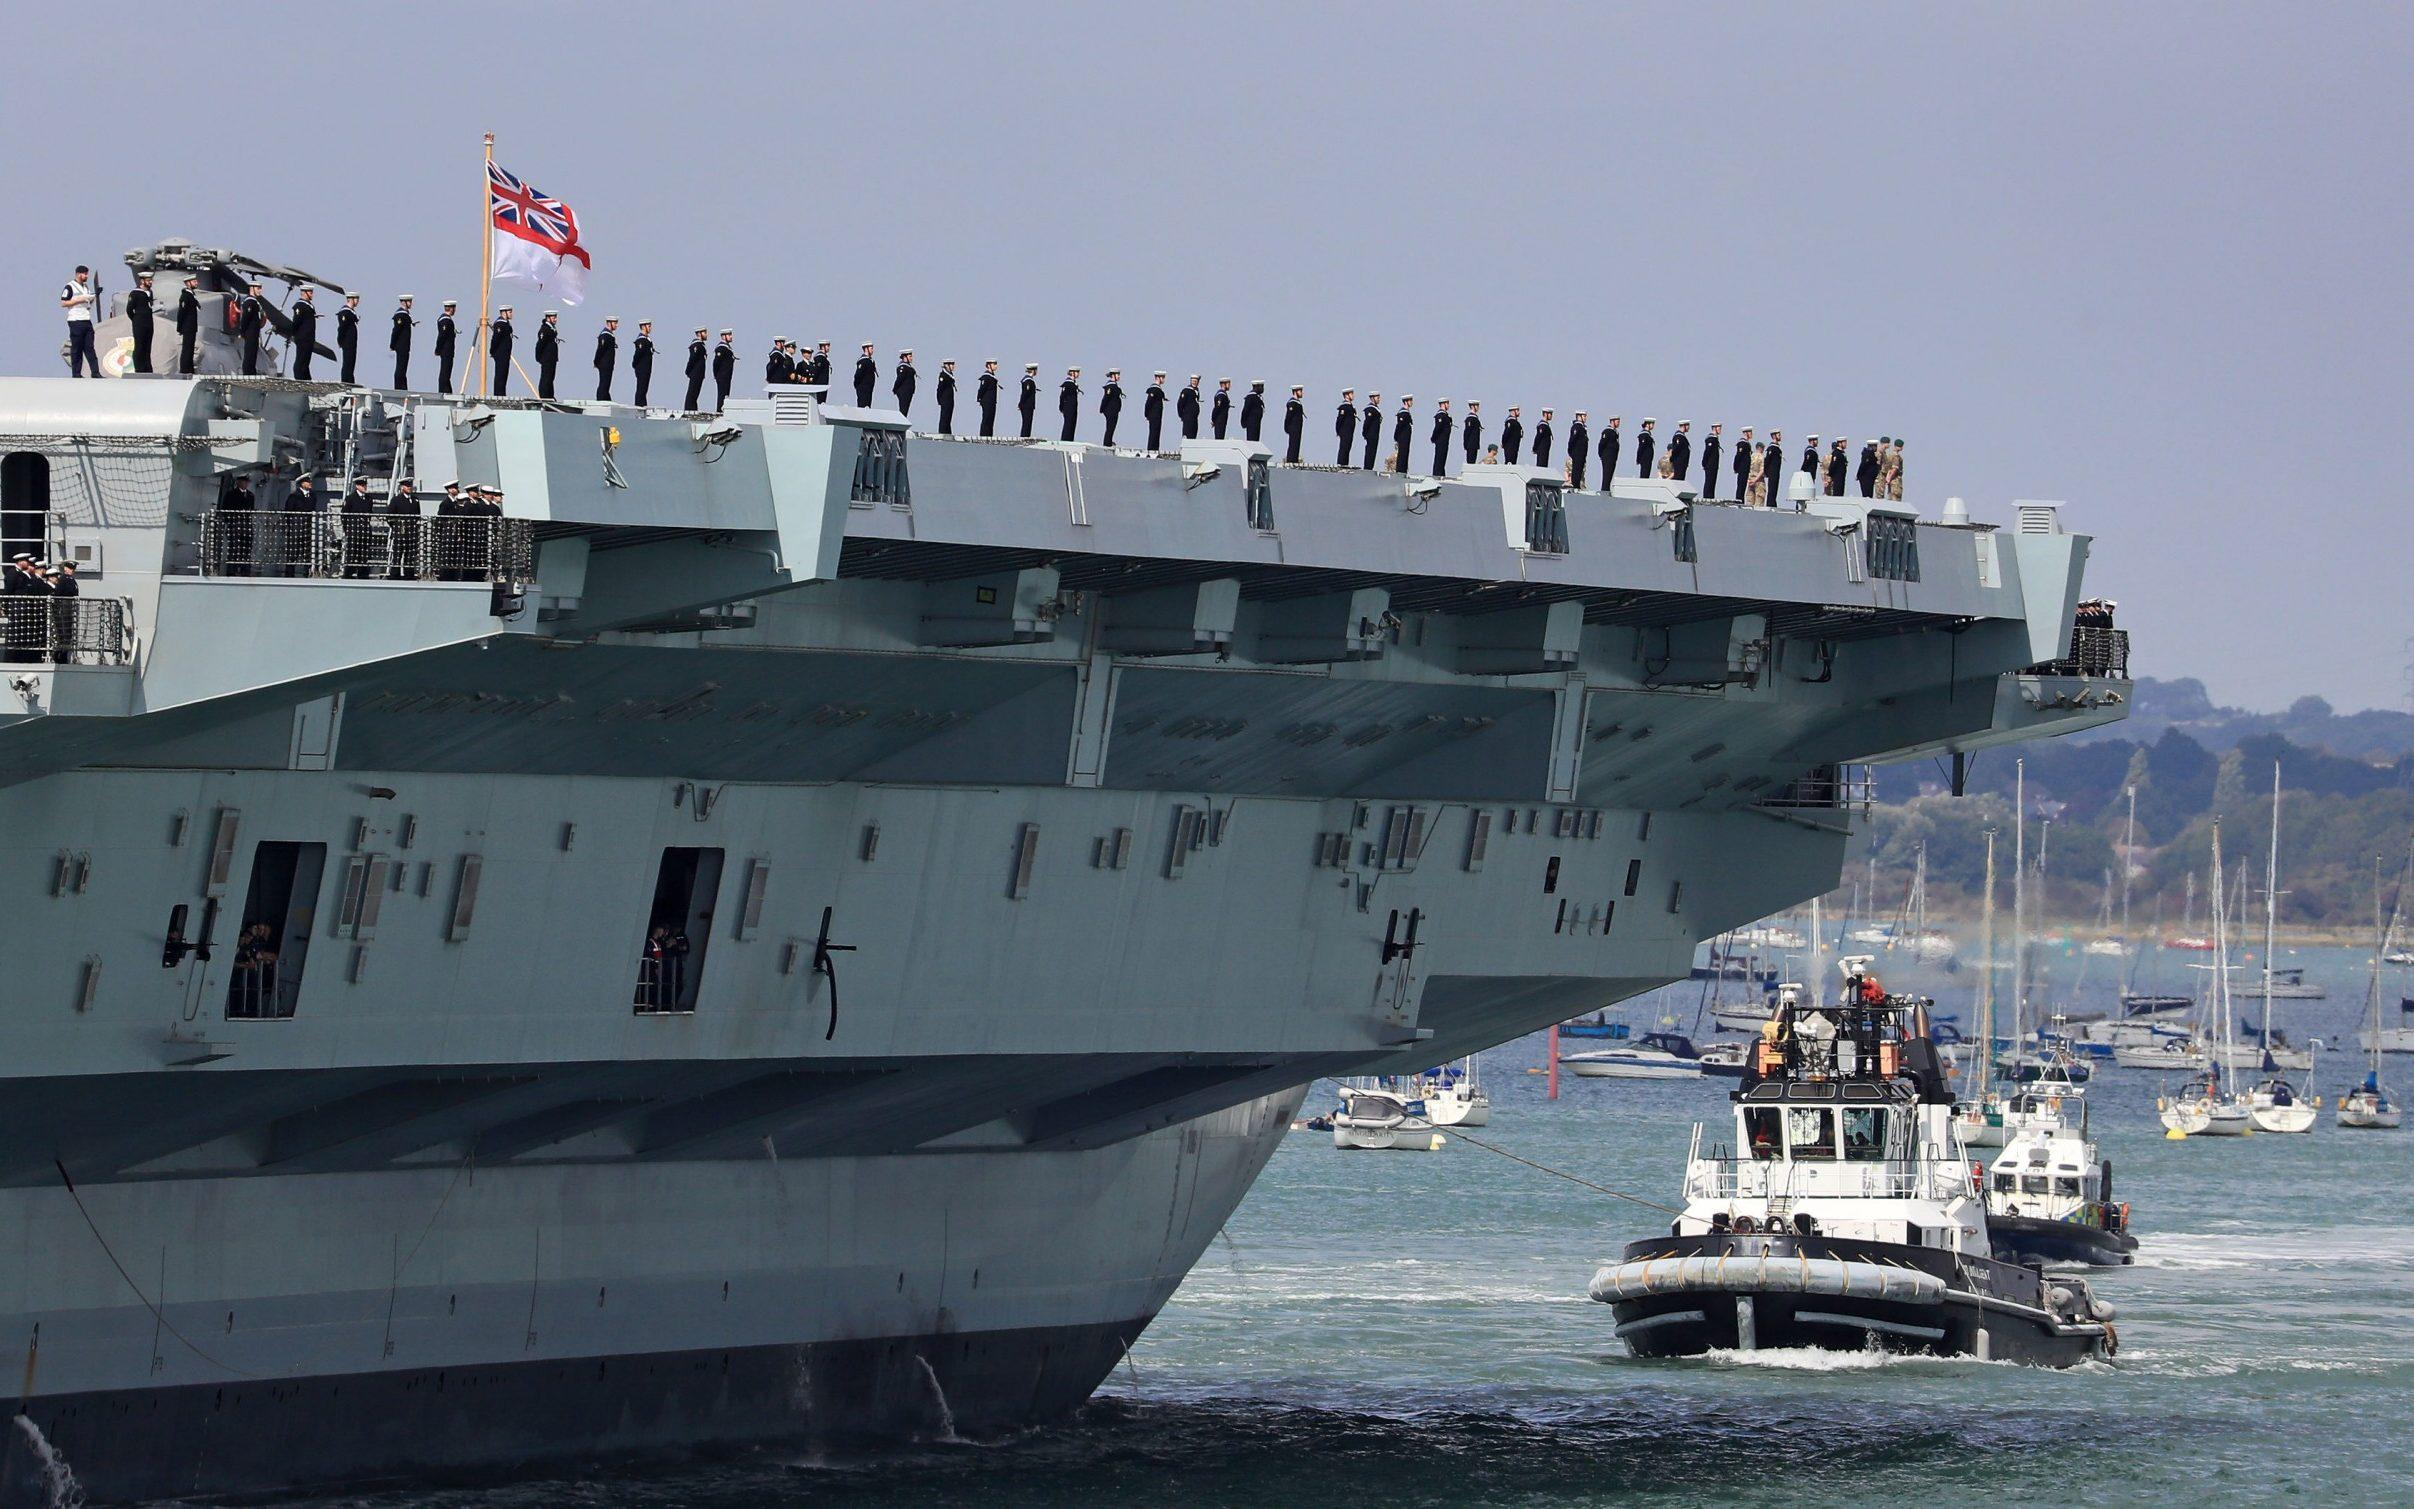 China warns the UK could be committing 'hostile action' if it sends carrier into territory